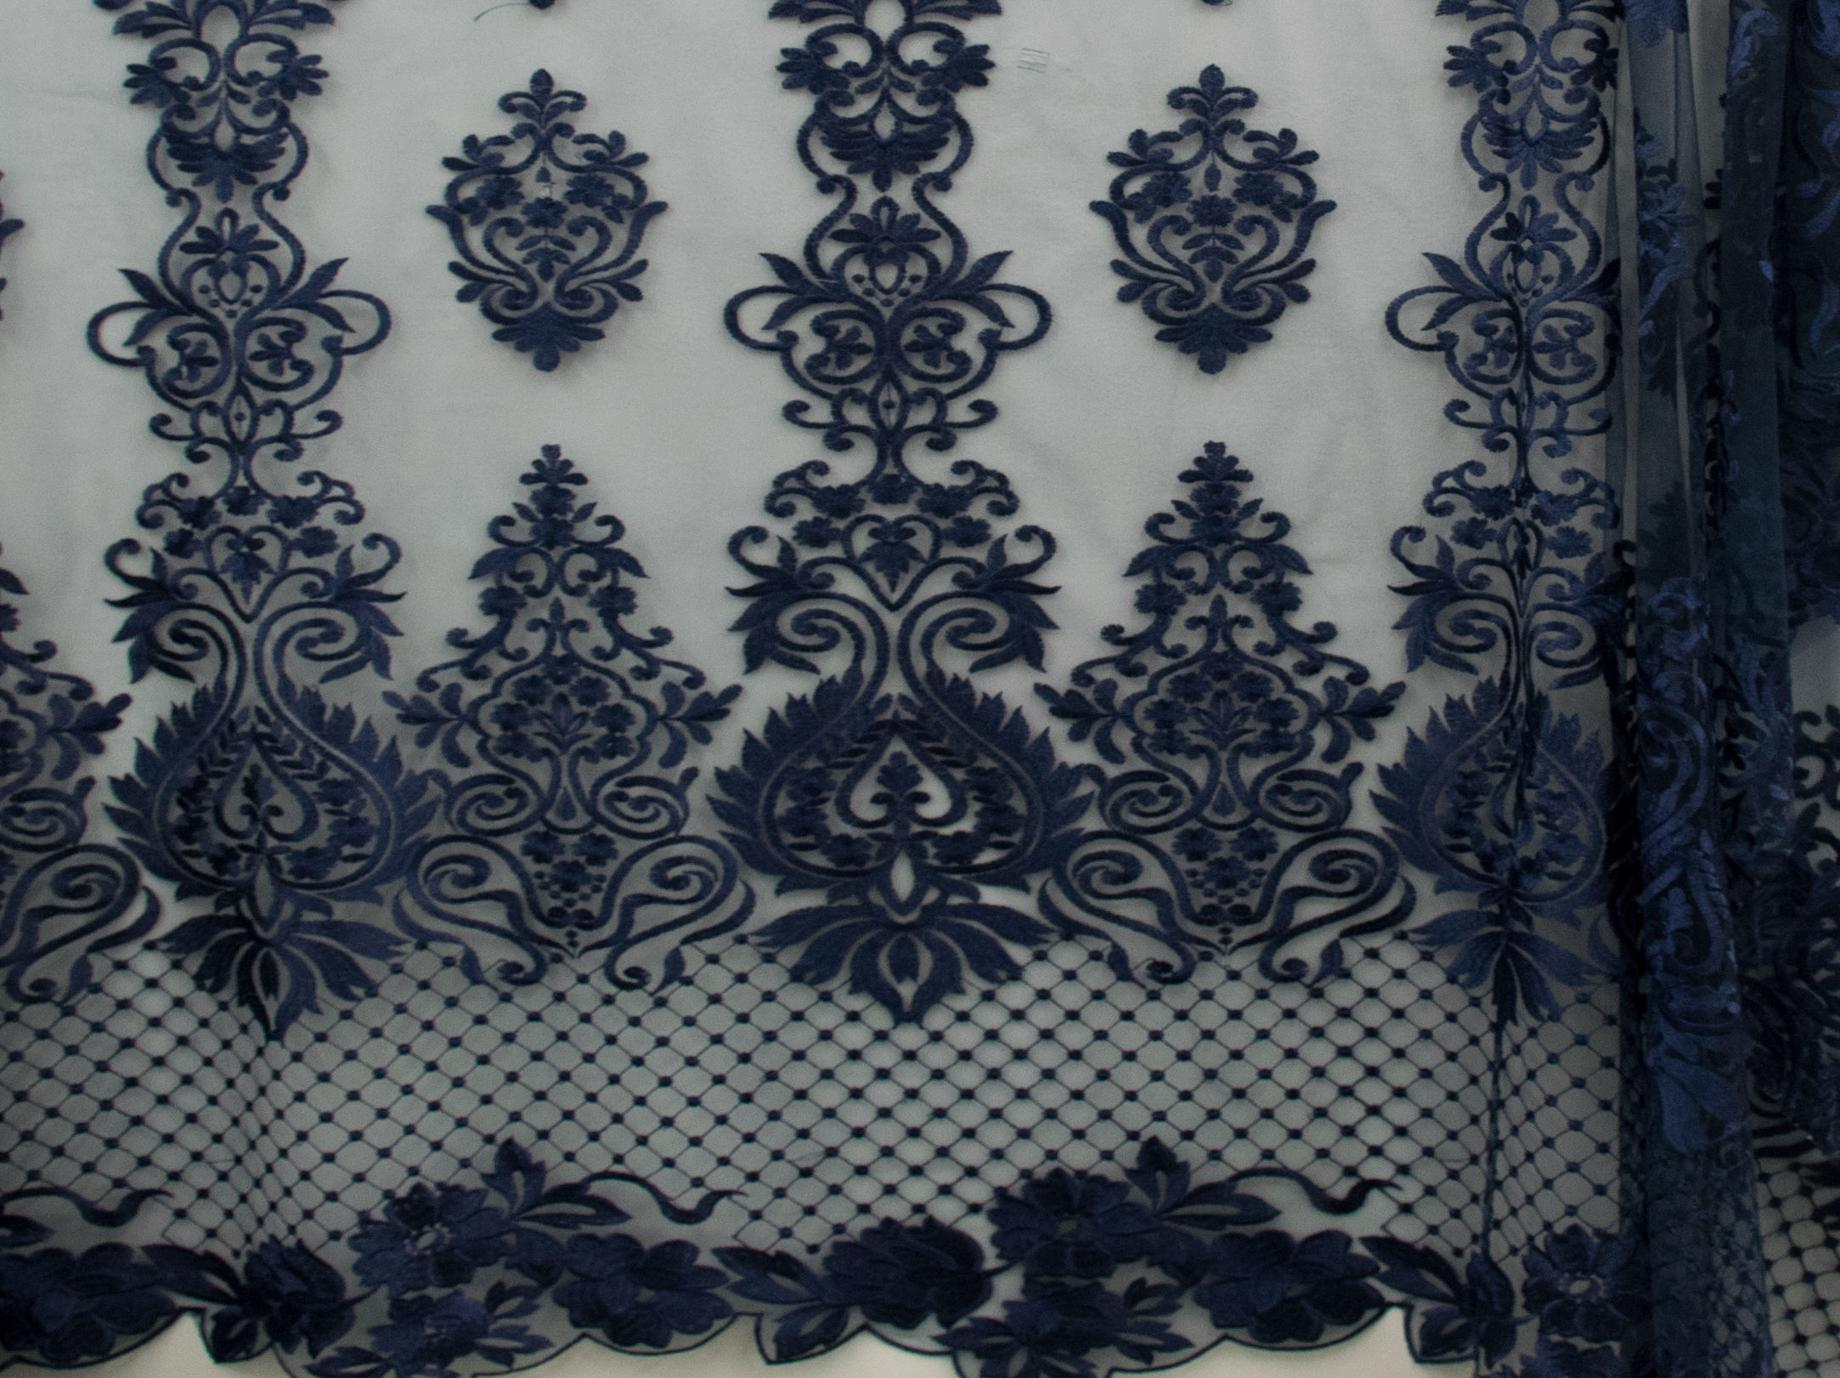 130cm SWISS HONEY COMB EMBROIDERED TULLE NAVY